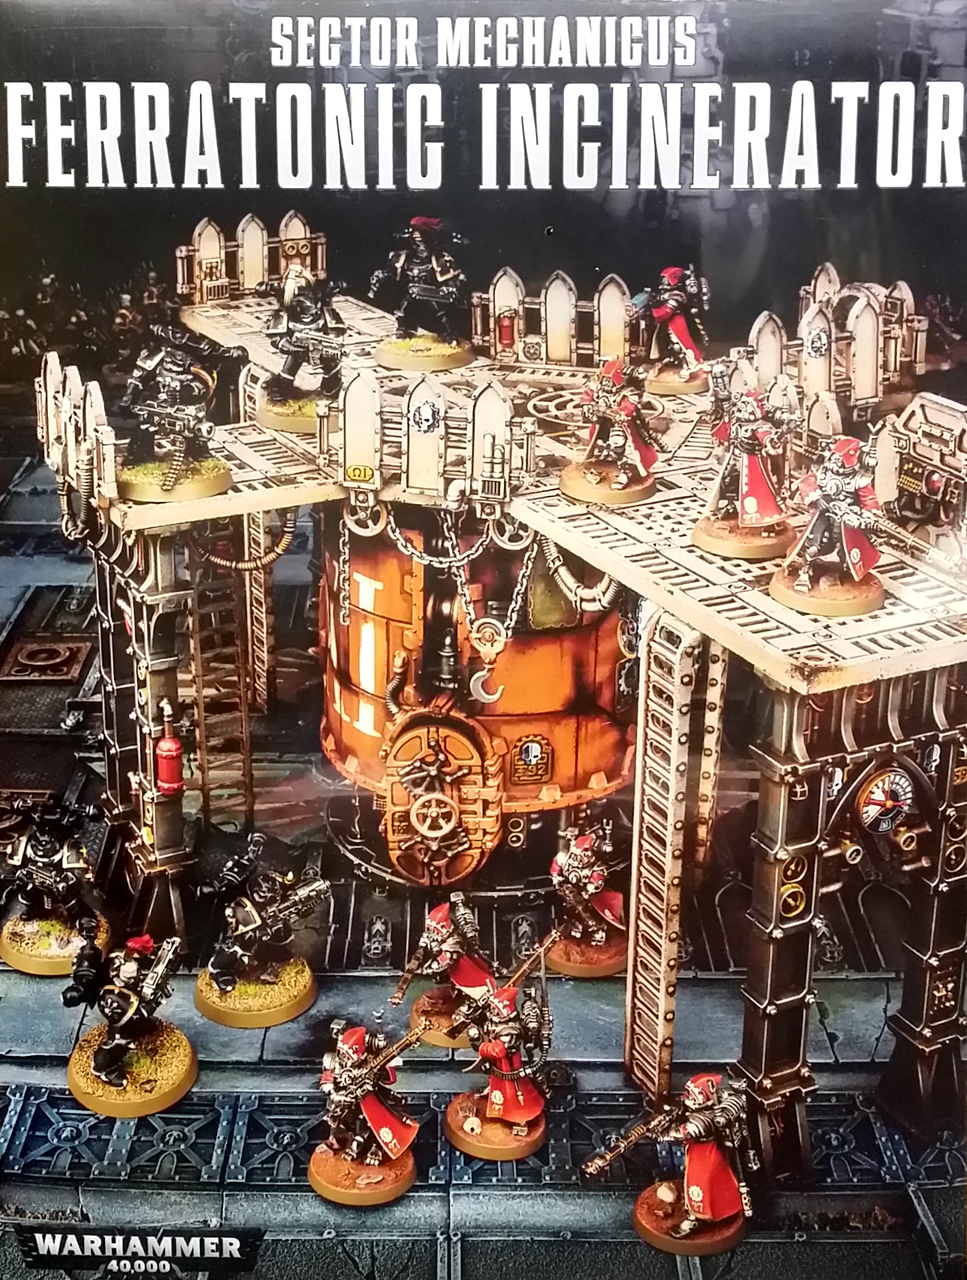 Ferratonic Incinerator